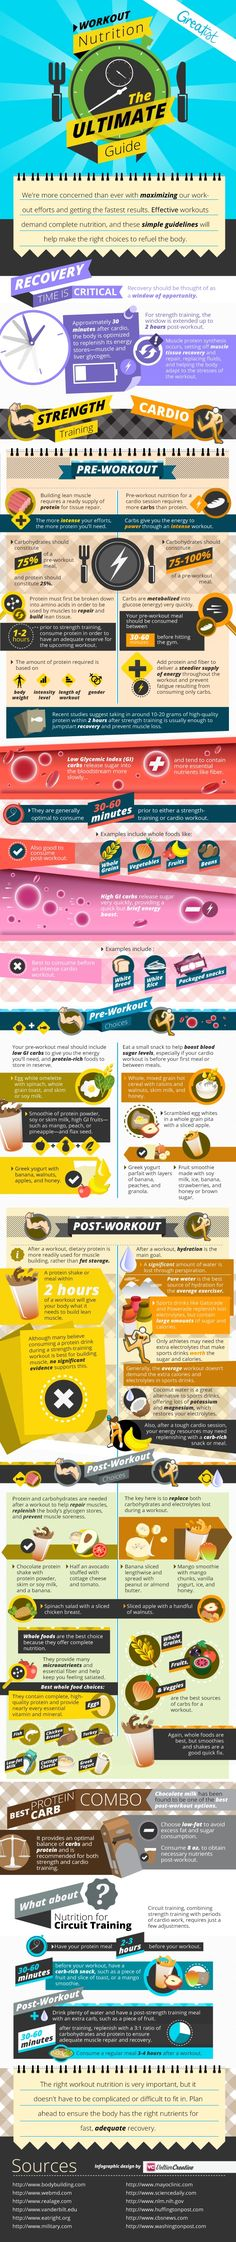 Guide to Work-Out Nutrition: Pre- vs. post-workout, and muscle building vs. cardio..